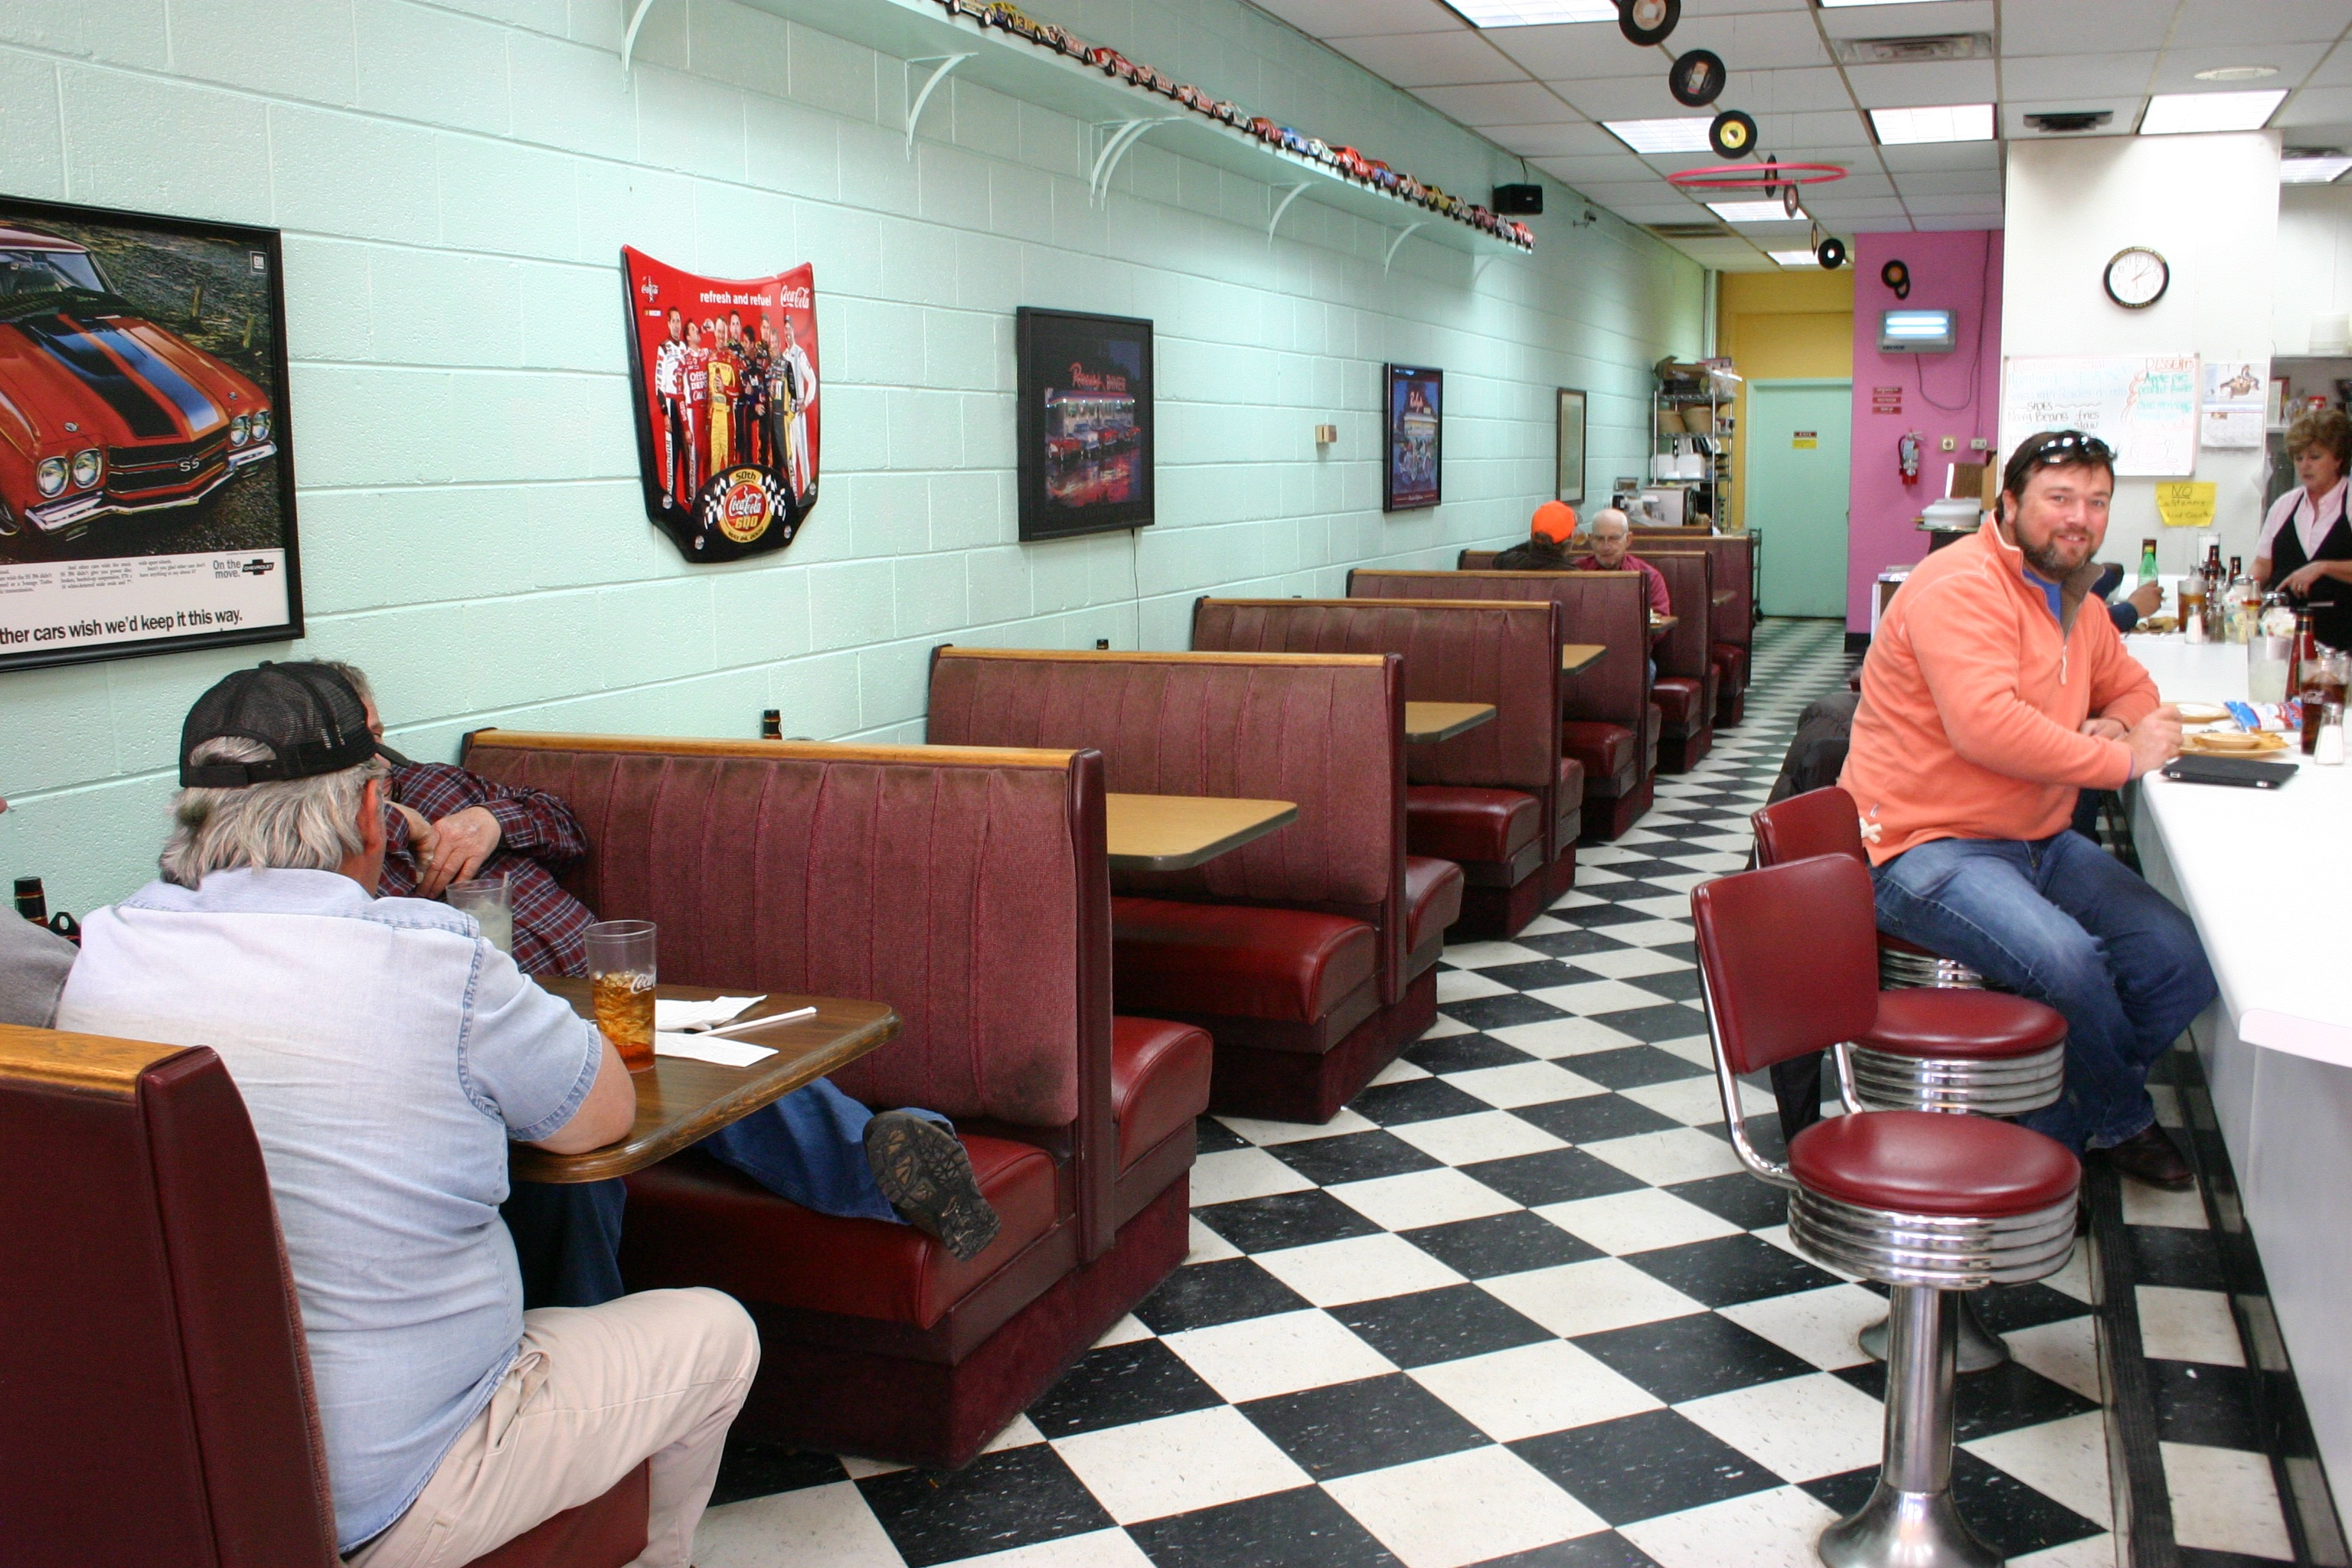 Diner wilmington nc : Snappy nails broomfield